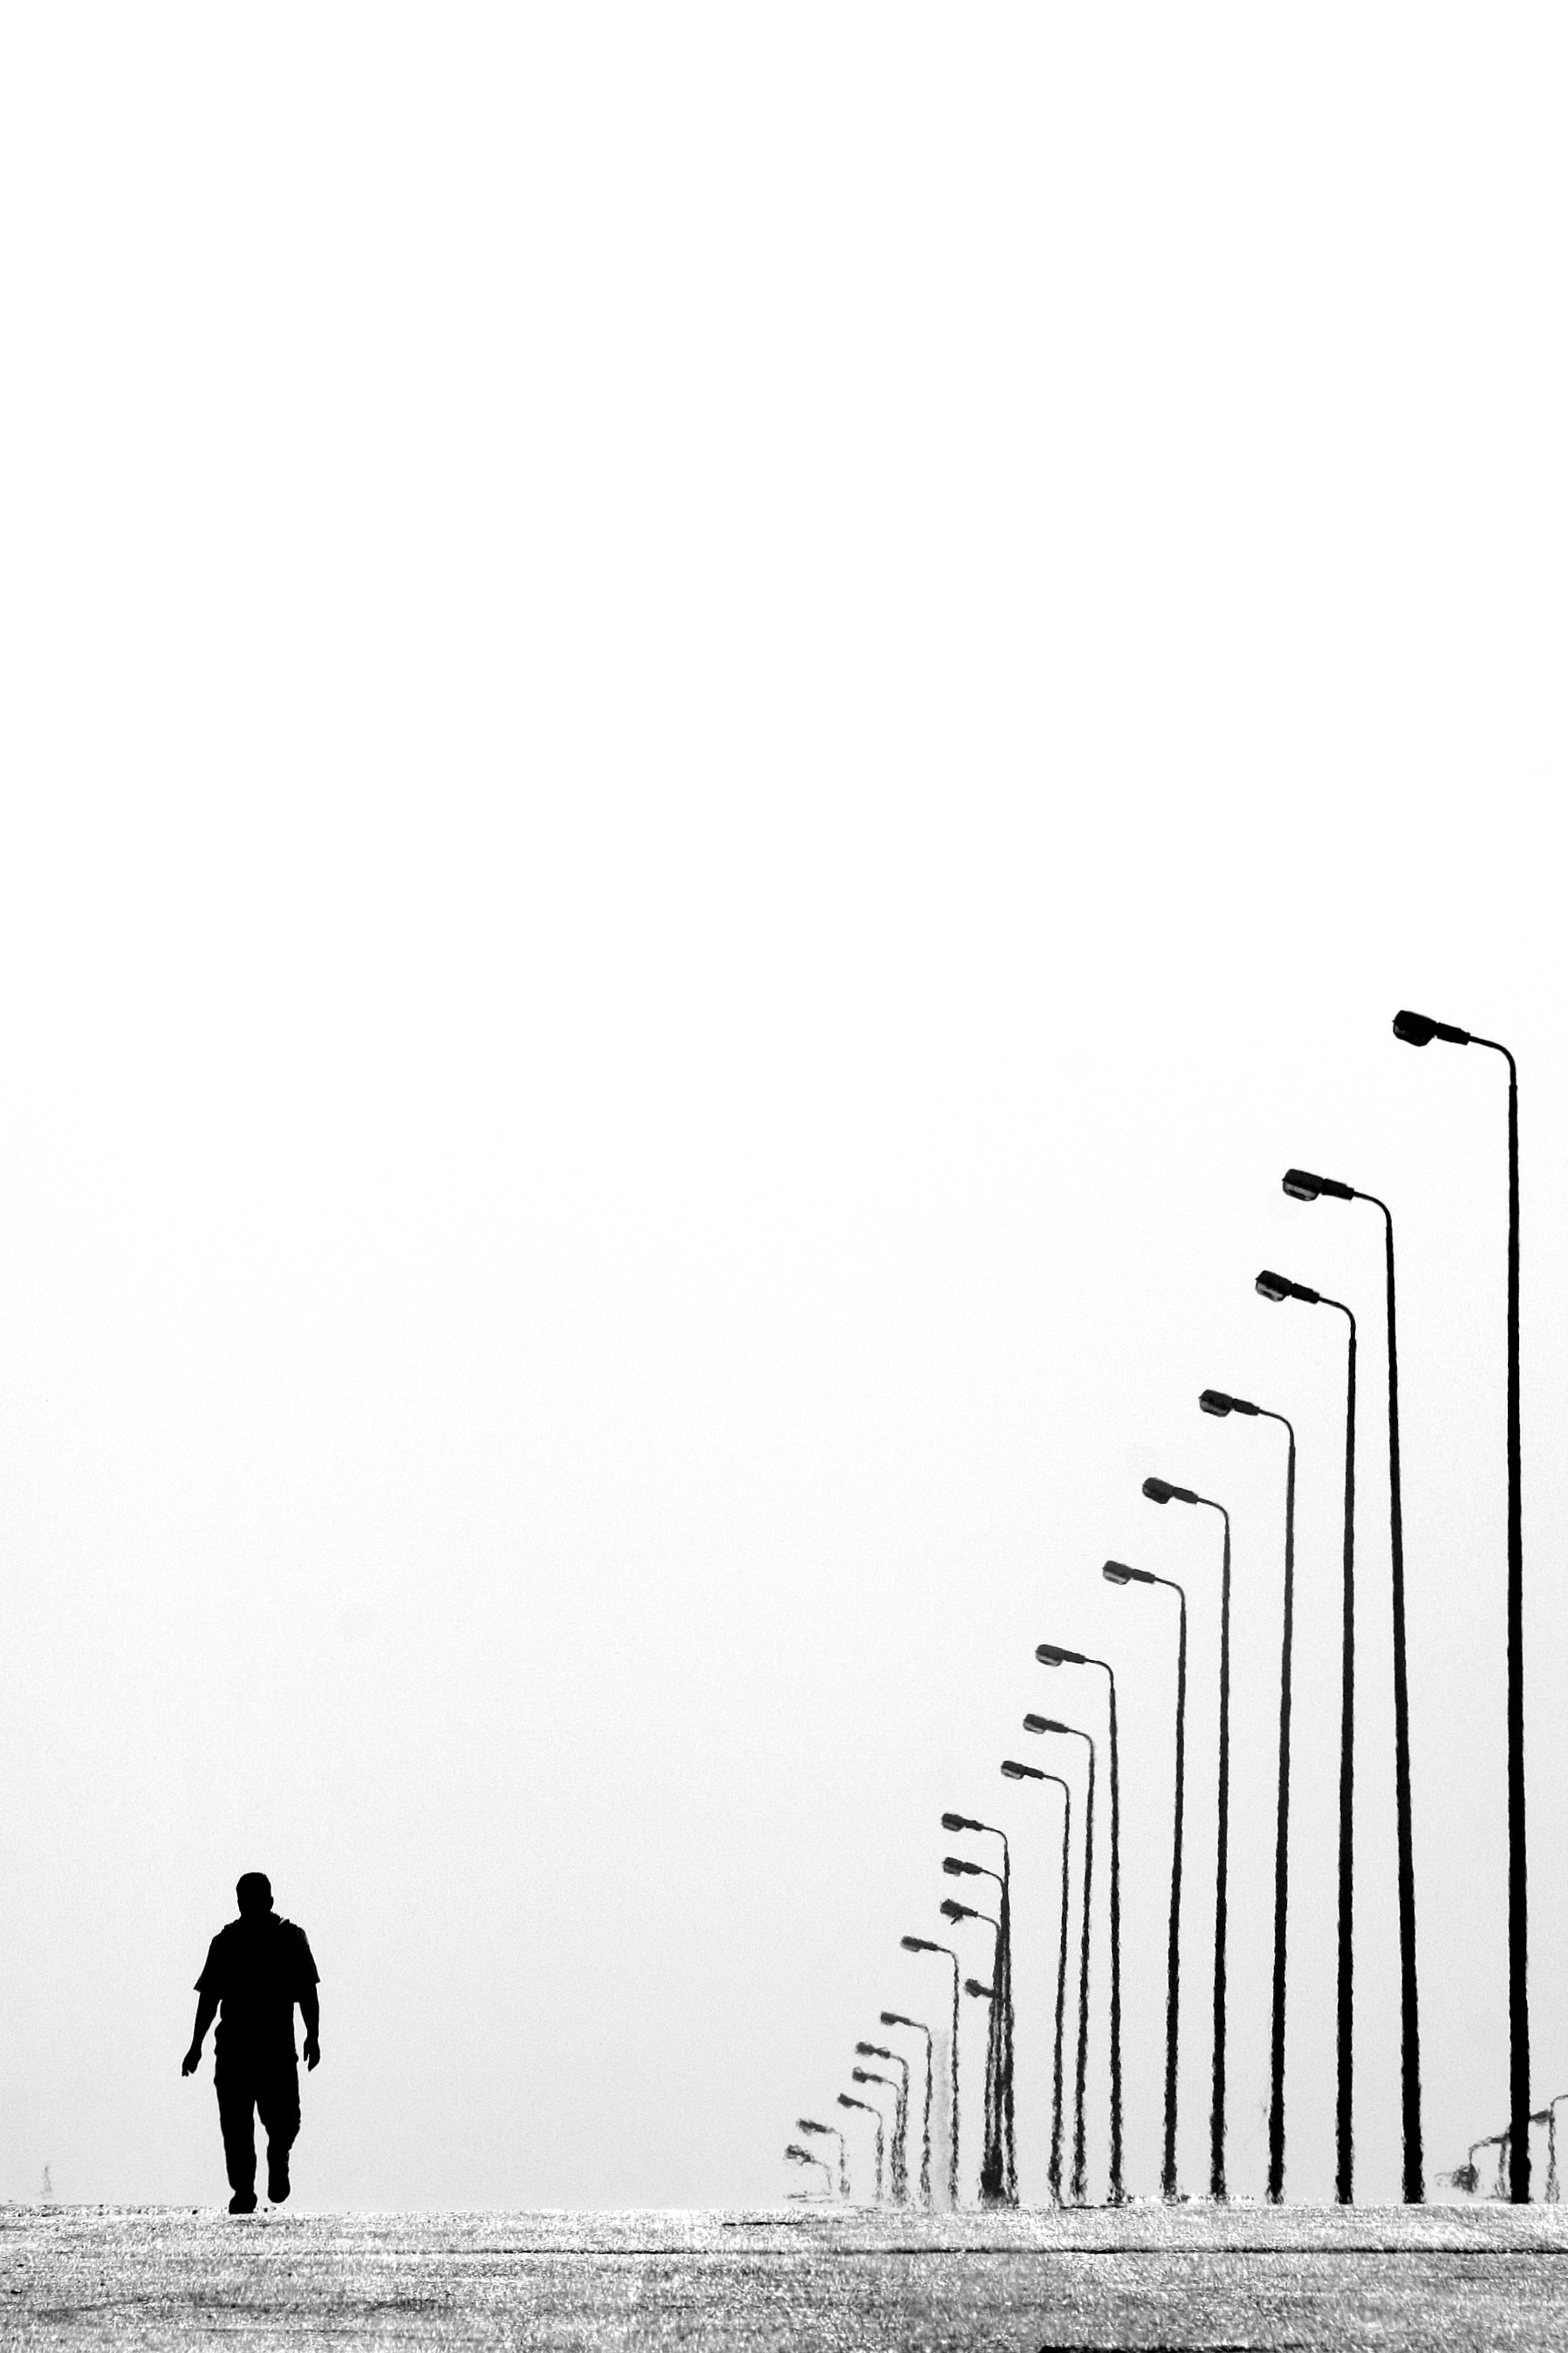 black-and-white-lampposts-lamps-91414.jpg